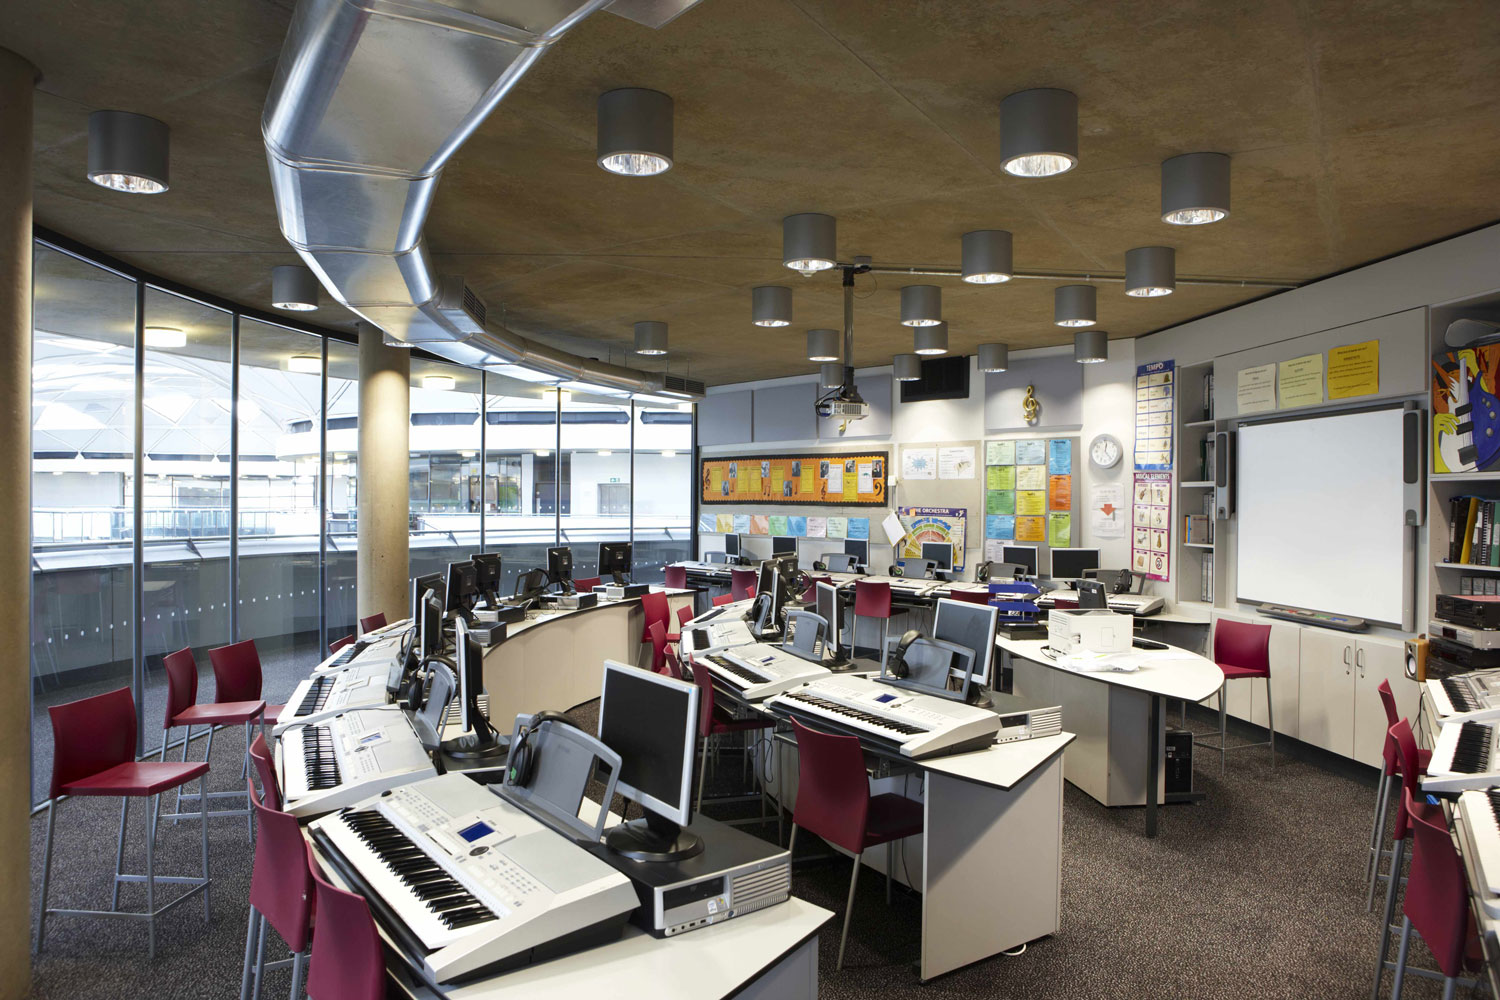 Thomas Deakin Academy, Peterborough | Architecture Photography London